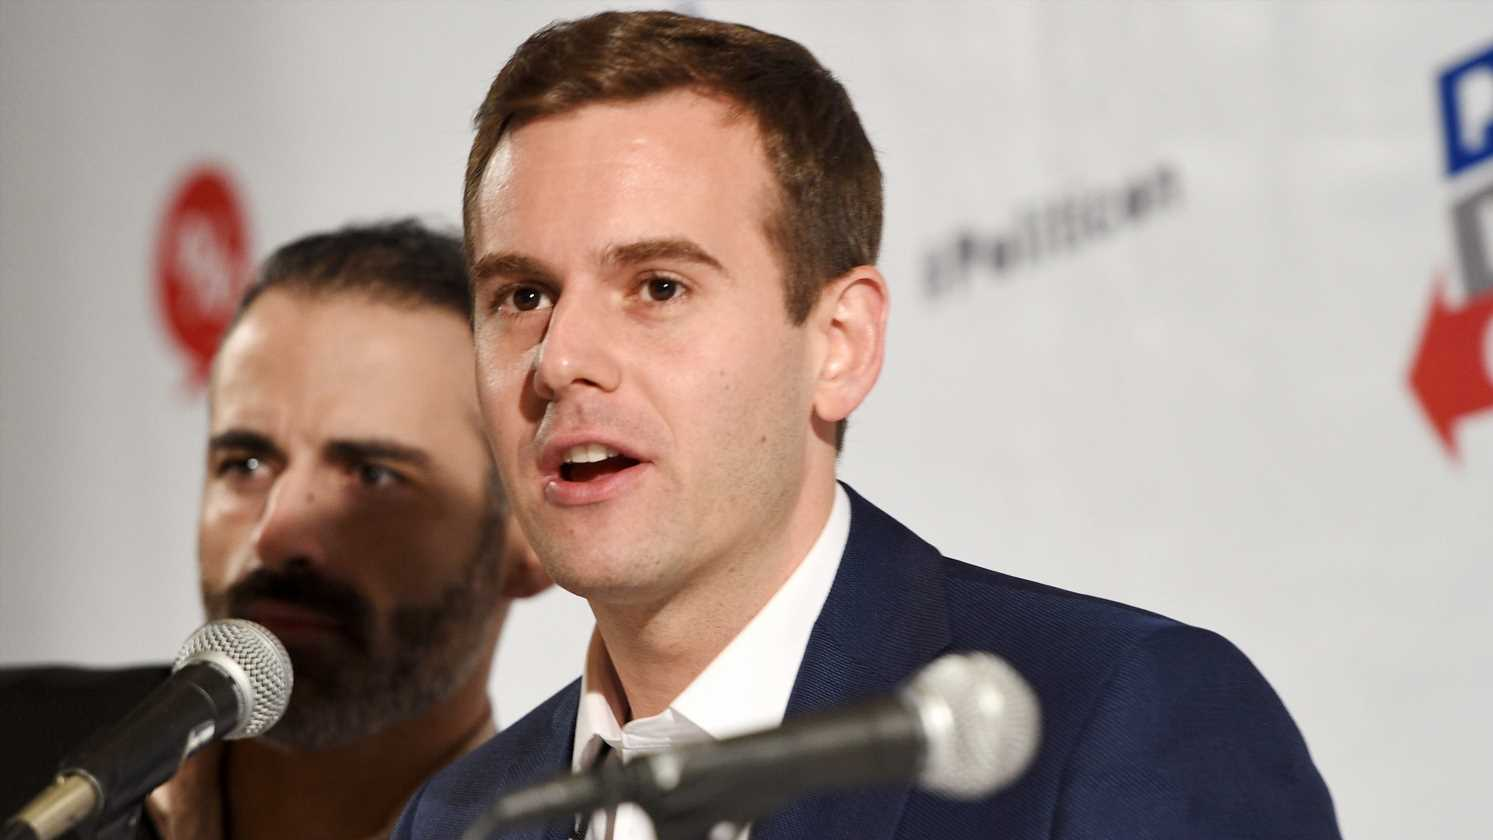 Fox News contributor Guy Benson marries boyfriend, says Megyn Kelly brought them together